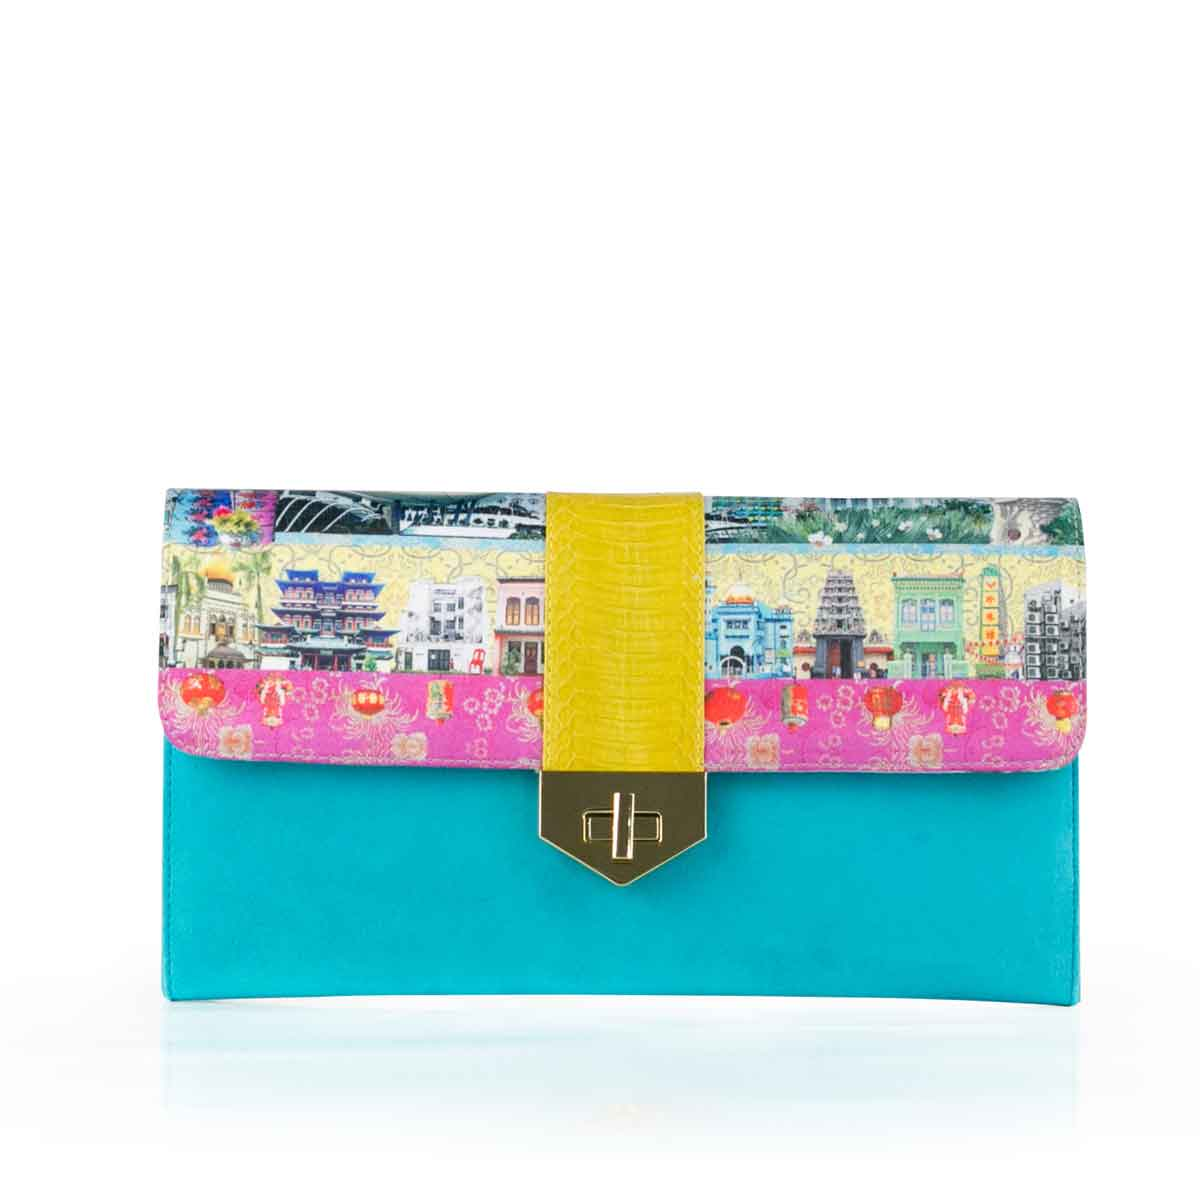 Singapore Story LUV YAH Clutch 'We Love Singapore' LOUISE HILL for DARSALA